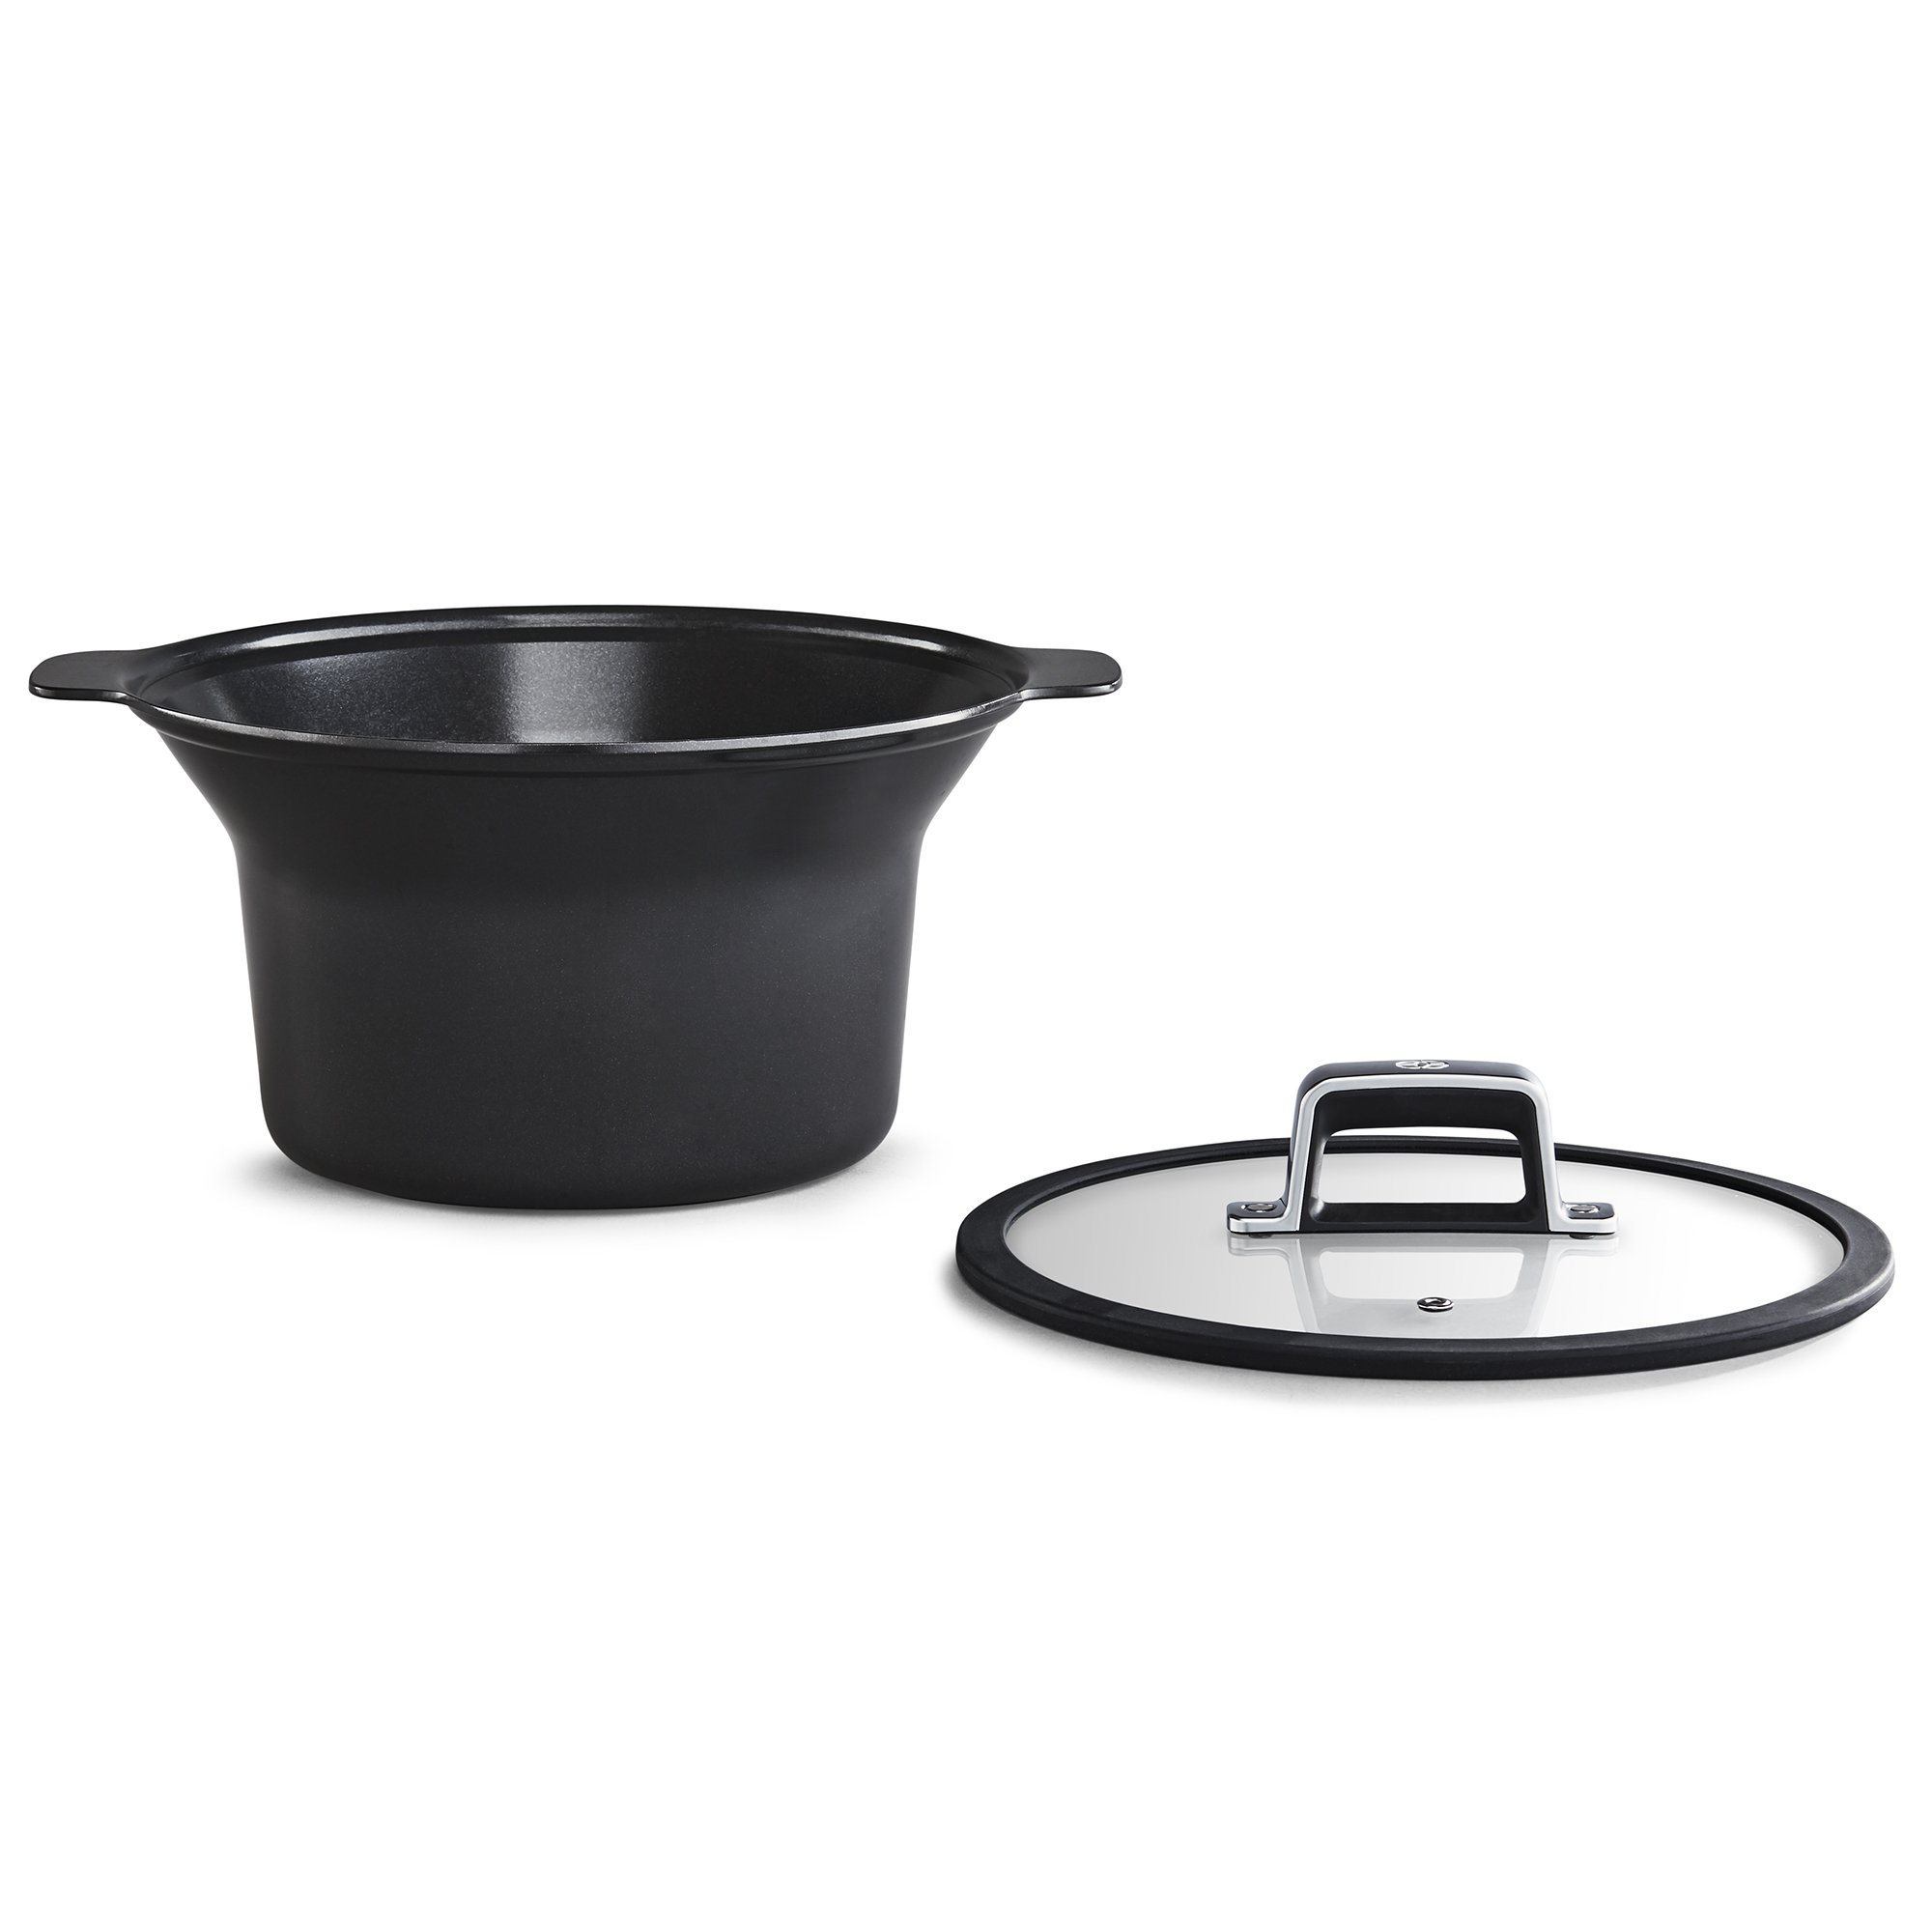 Calphalon Precision Control Slow Cooker Replacement Cooking Pot